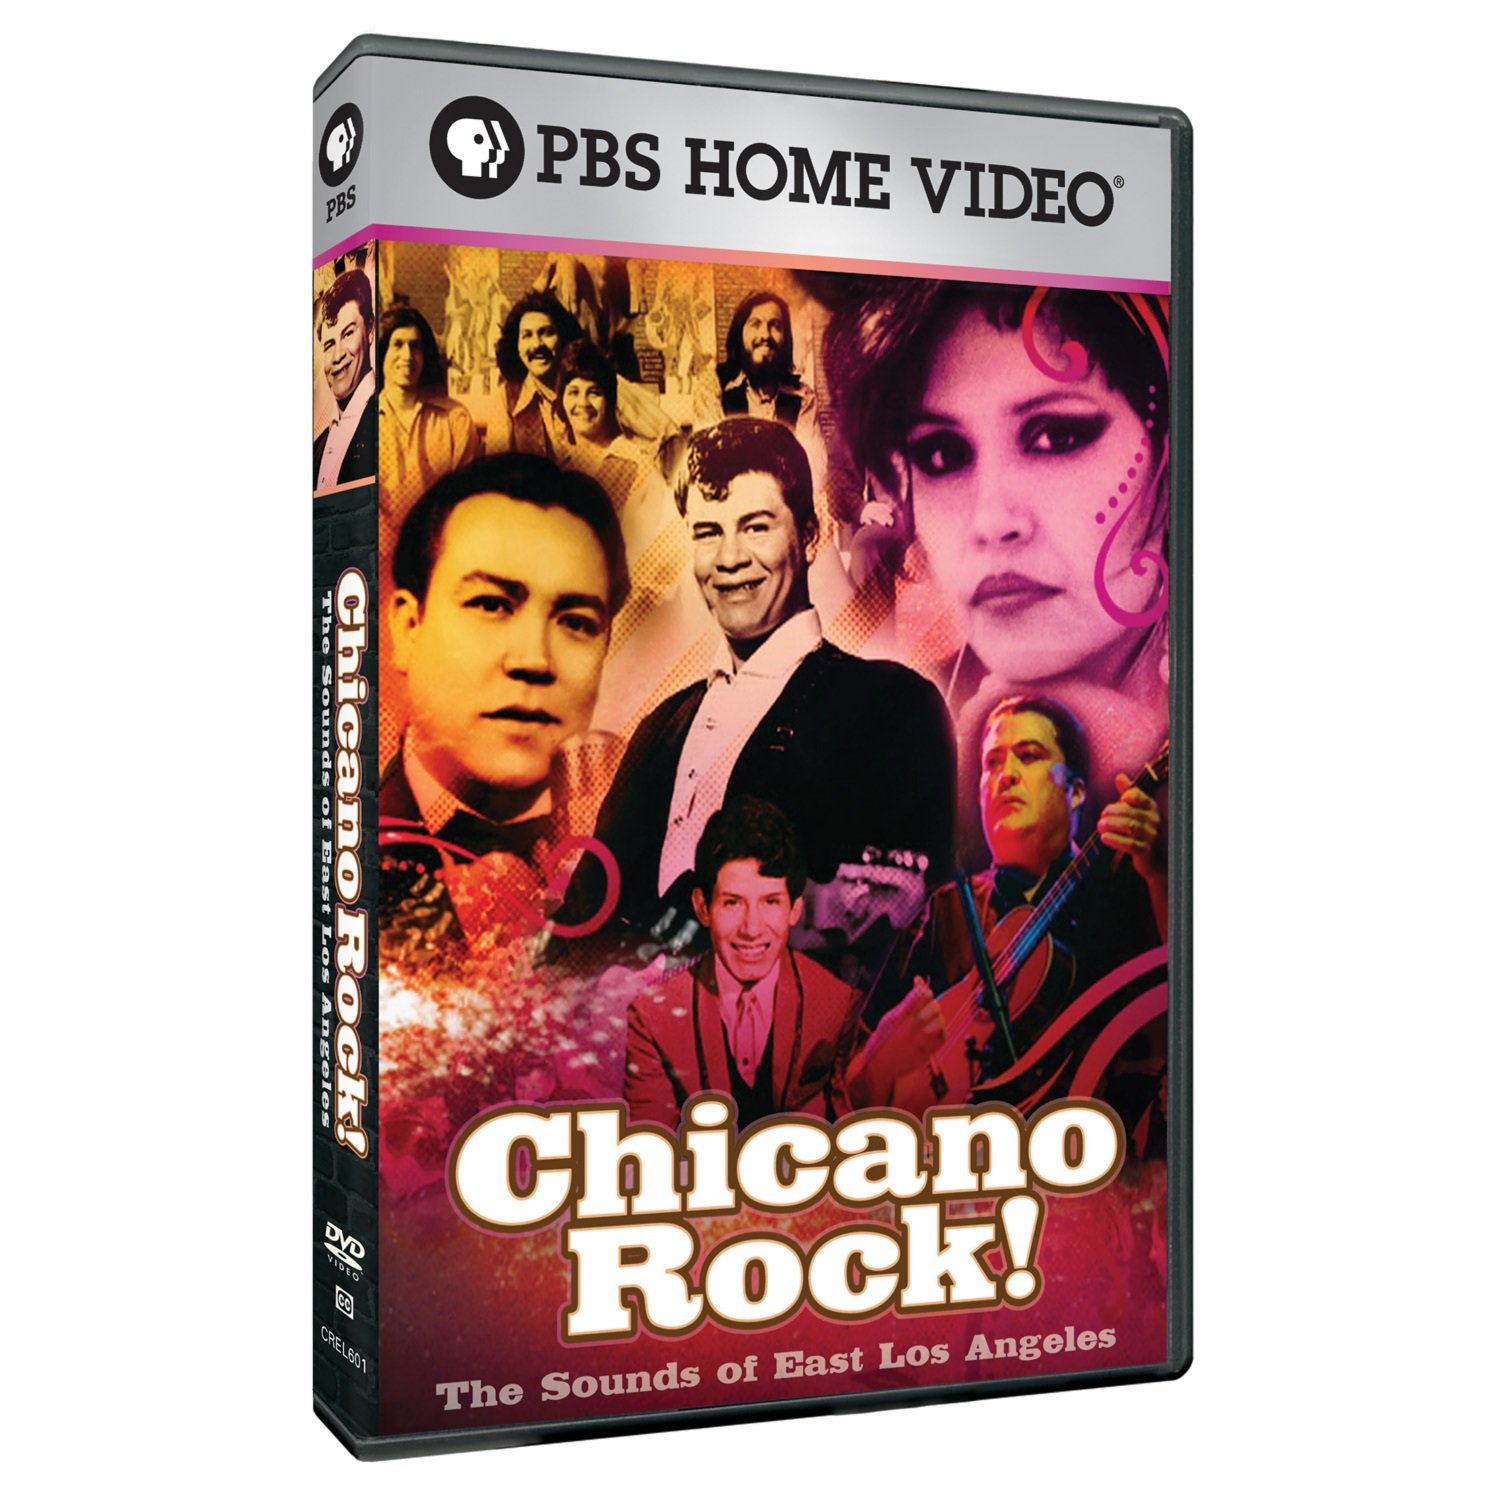 DVD : Edward James Olmos - Chicano Rock!: The Sounds of East Los Angeles (DVD)